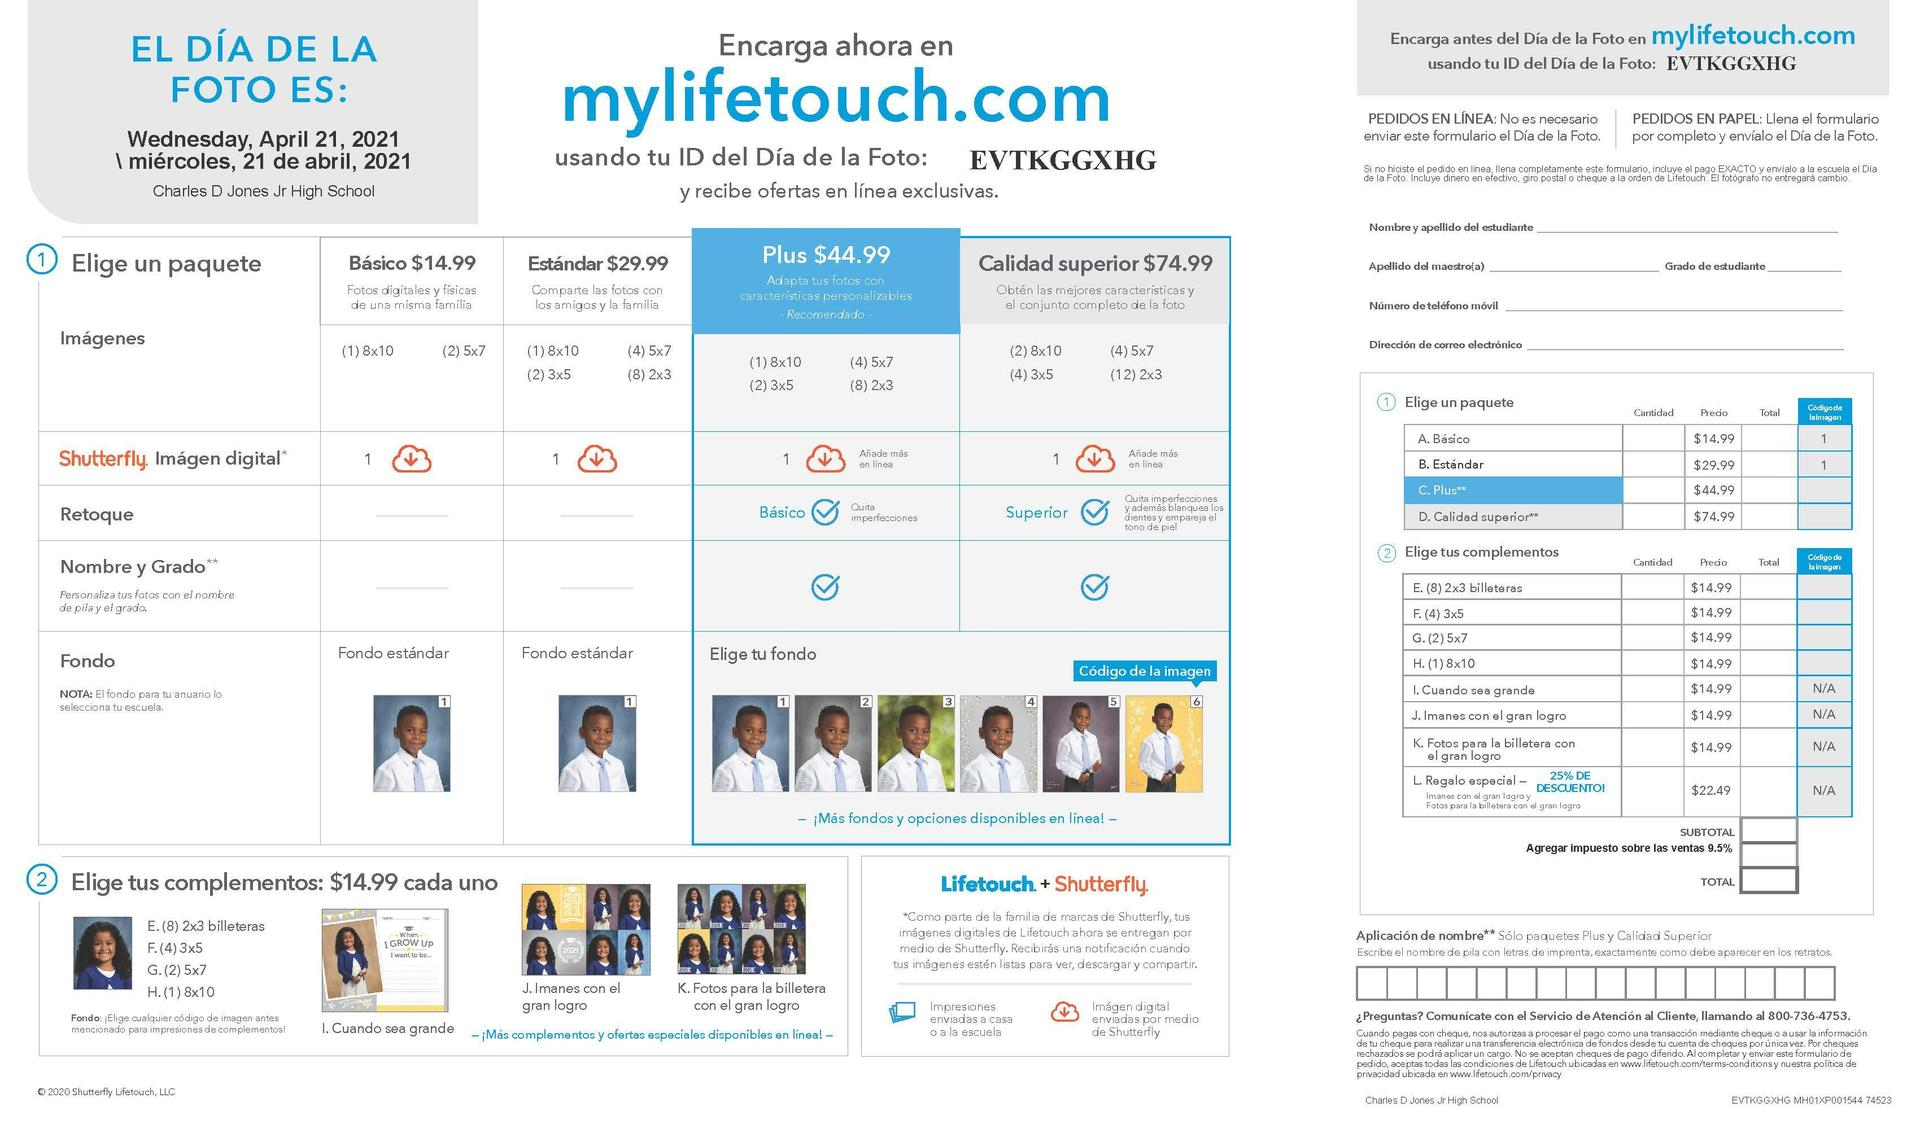 Lifetouch 1